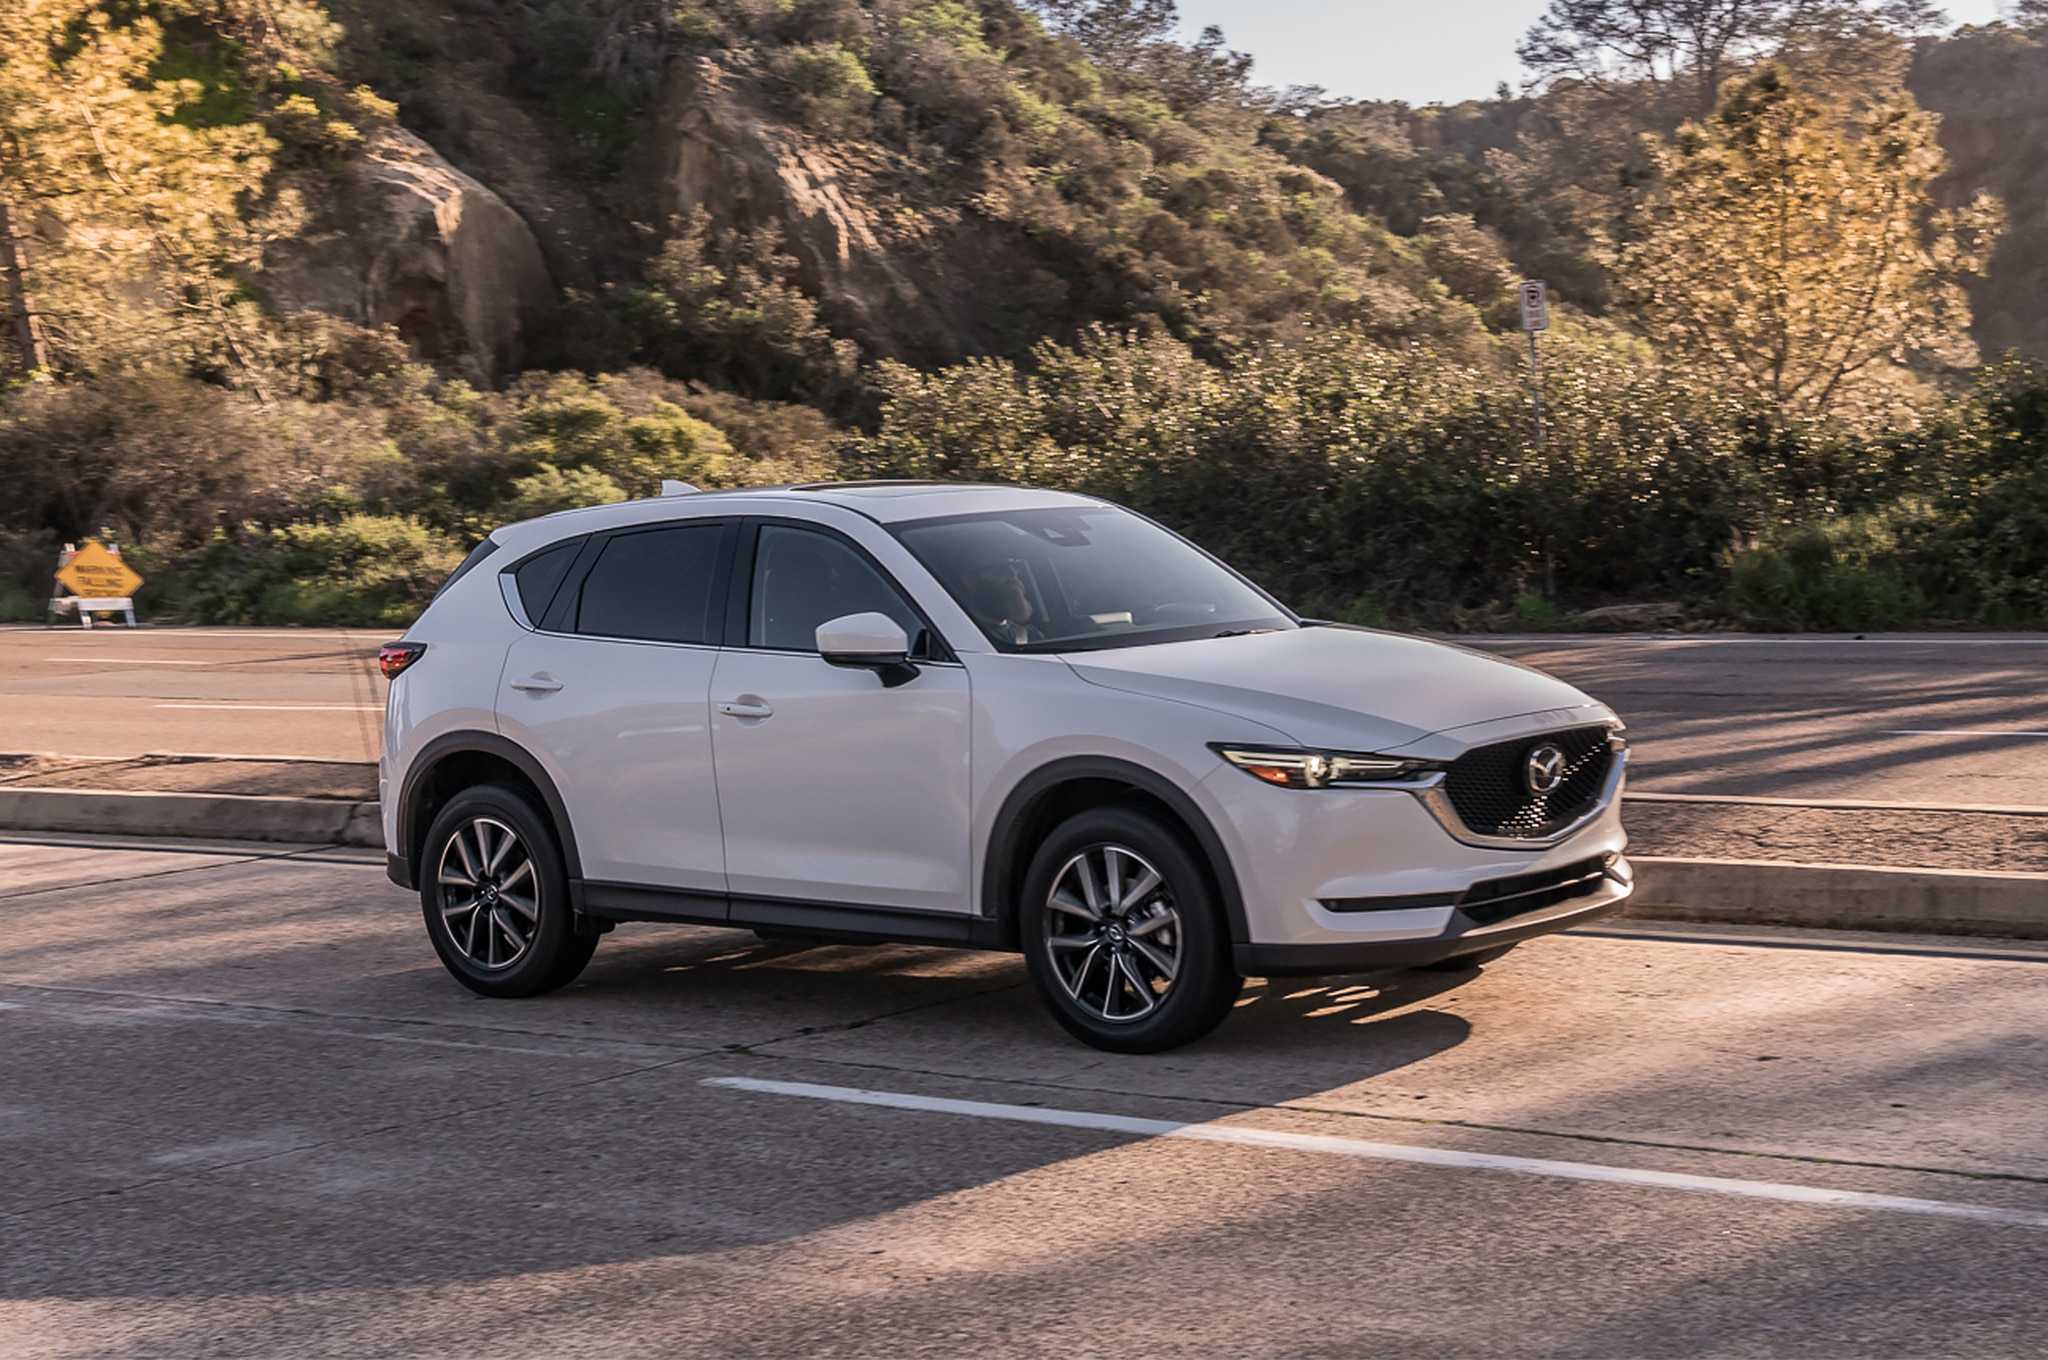 2017 mazda cx 5 first drive review automobile magazine. Black Bedroom Furniture Sets. Home Design Ideas